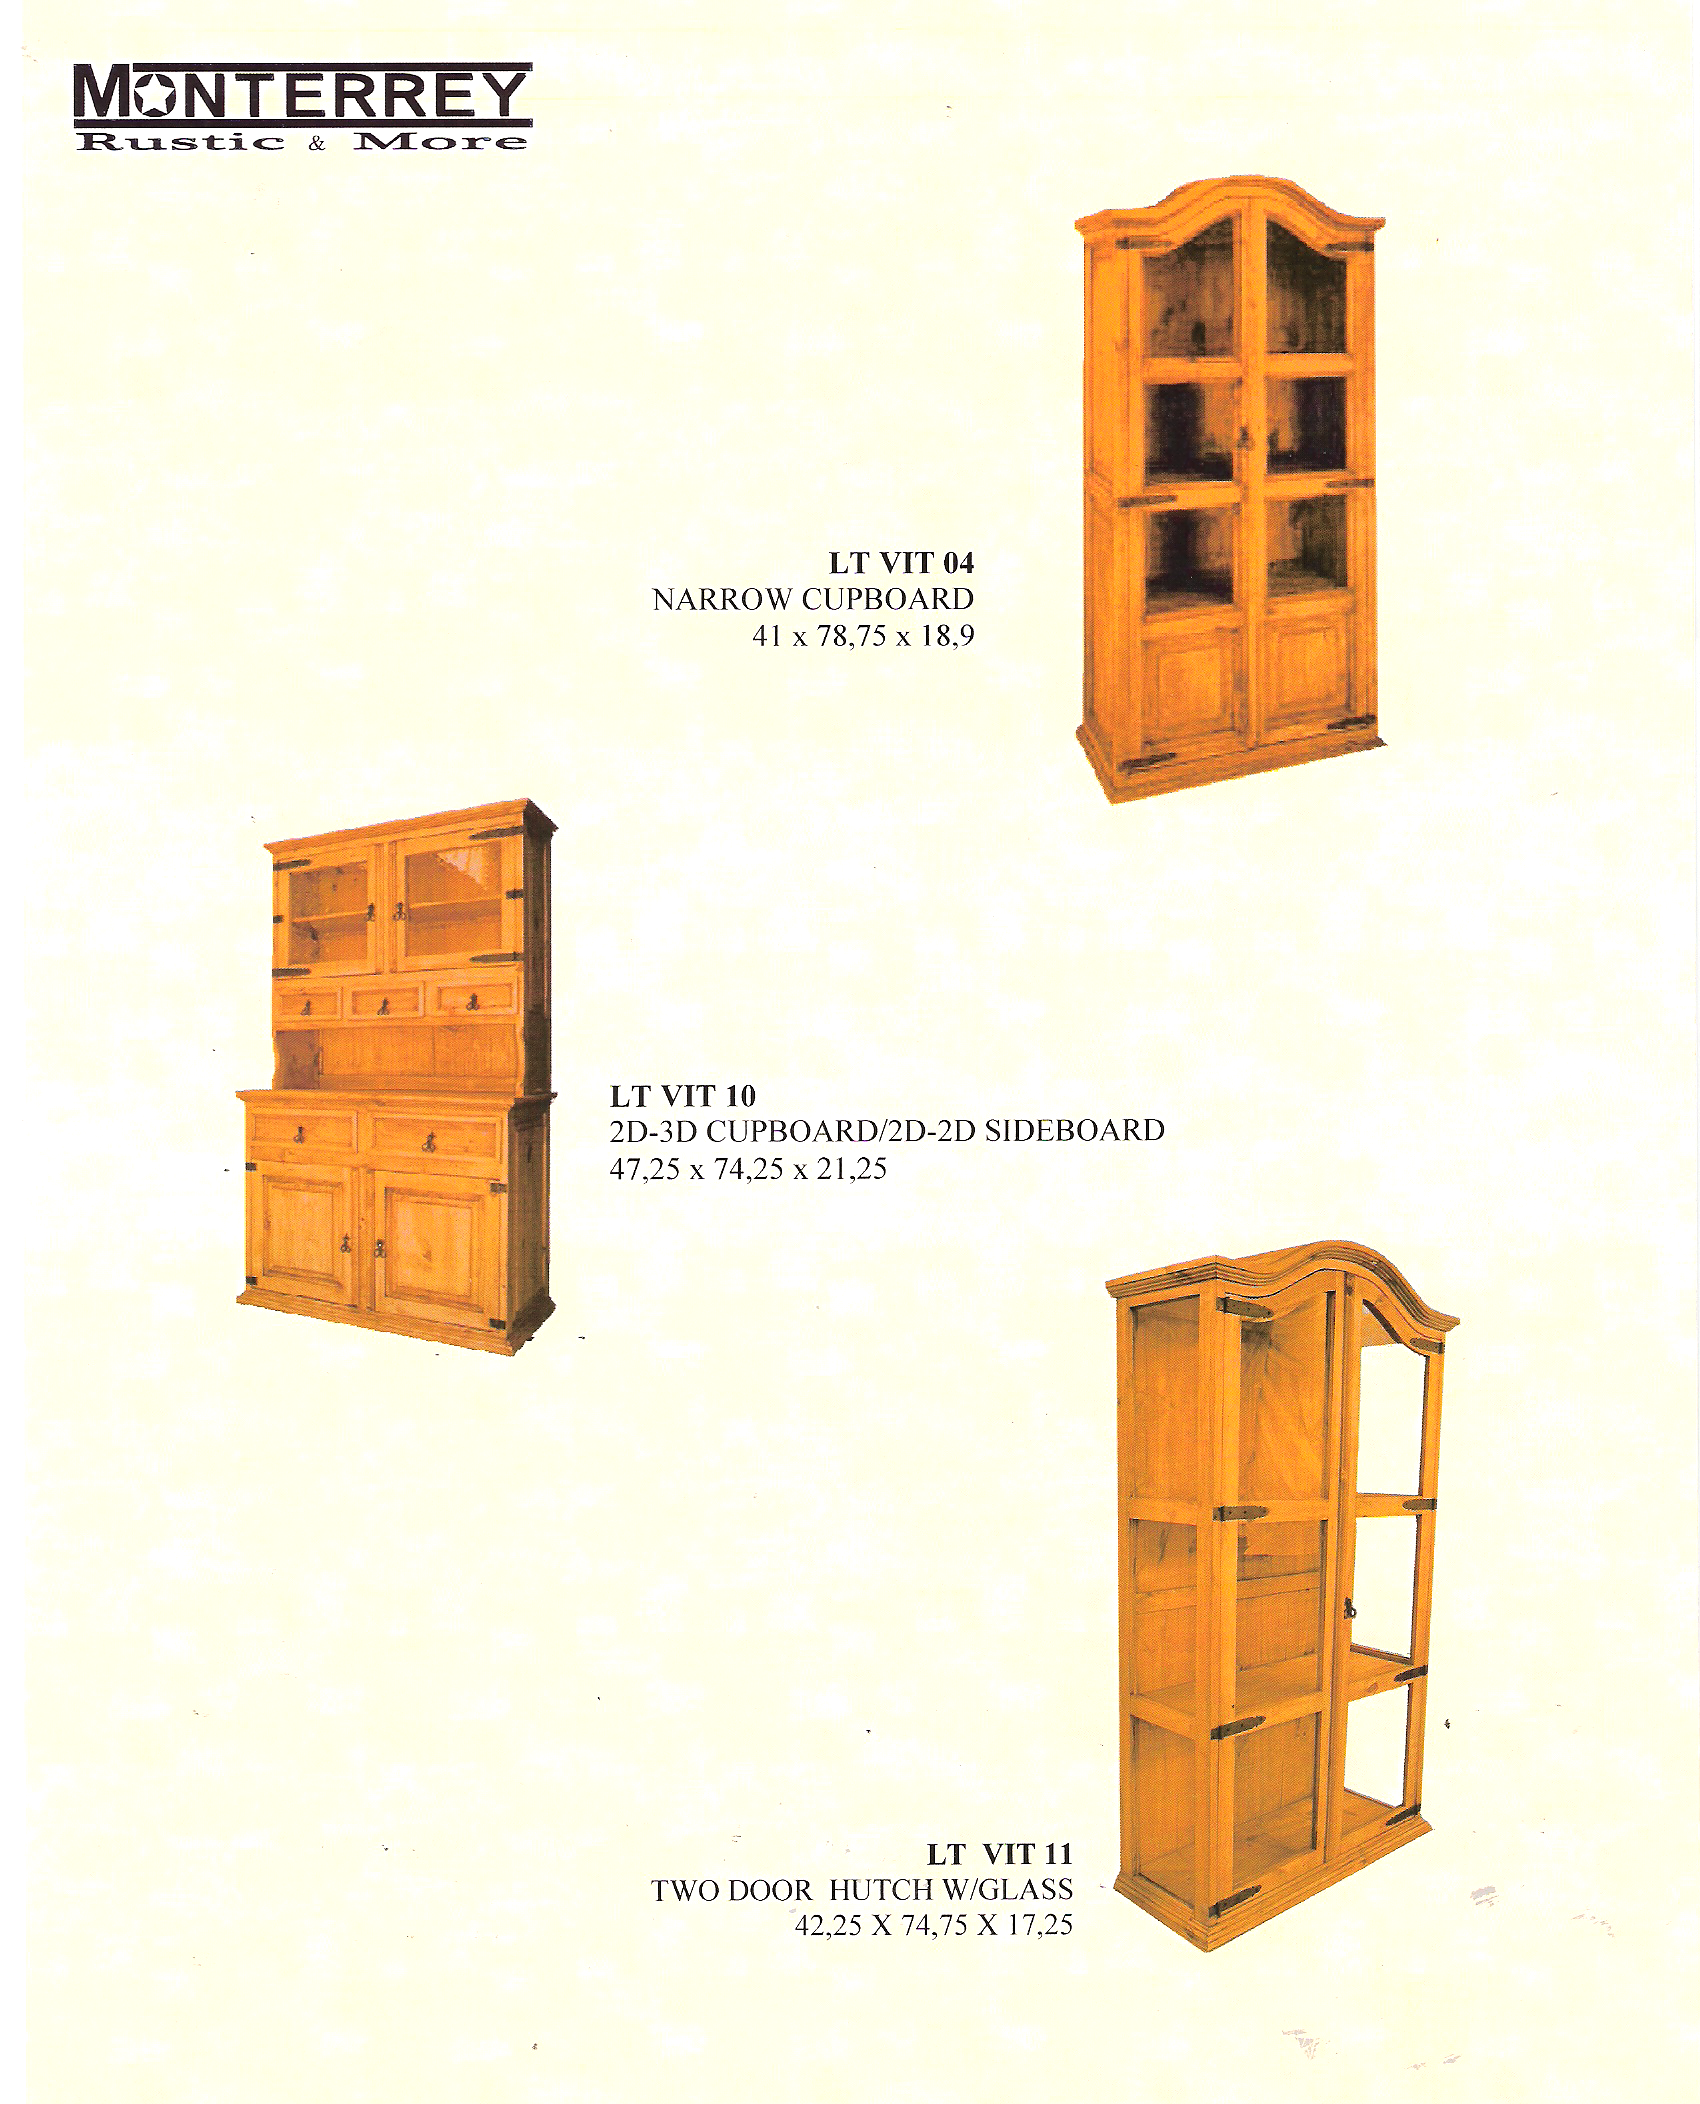 Dining Room Cabinets Monterrey Rustic Furniture